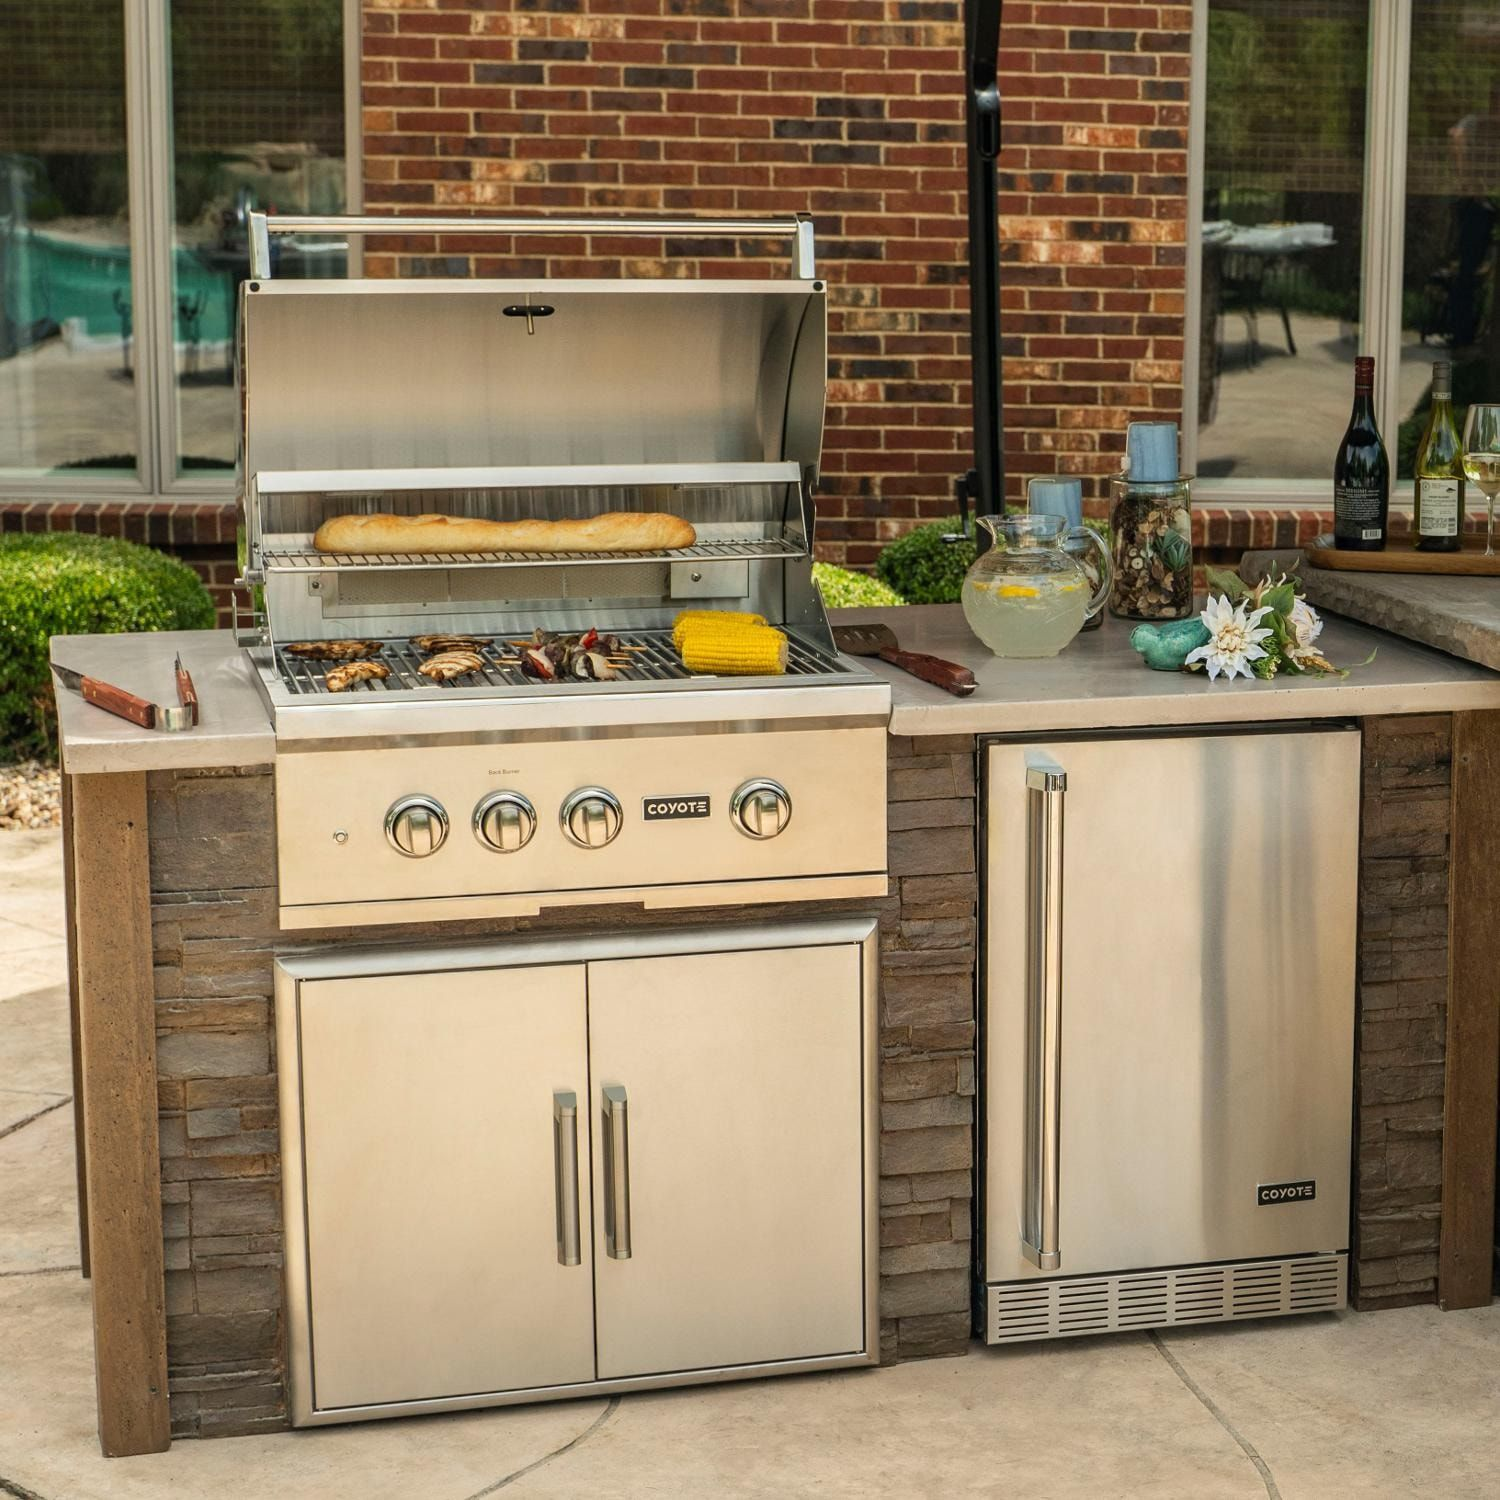 Coyote Has Partnered With Rta Outdoor Living To Manufacture This Outdoor Kitchen Island That Provides A Qu Outdoor Kitchen Island Outdoor Kitchen Stacked Stone